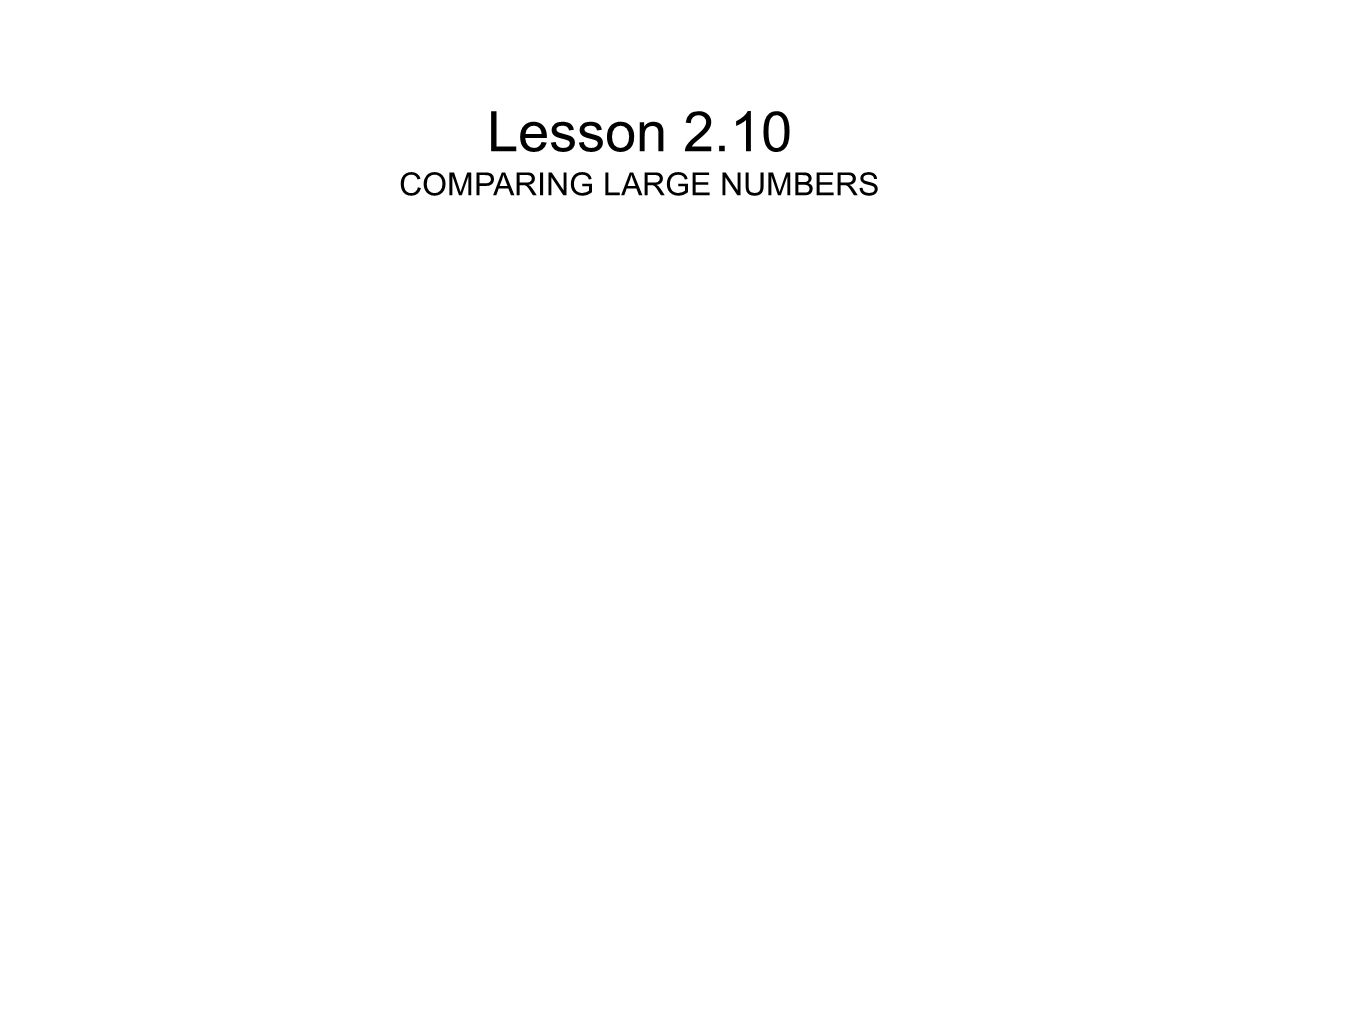 Lesson 2.10 COMPARING LARGE NUMBERS